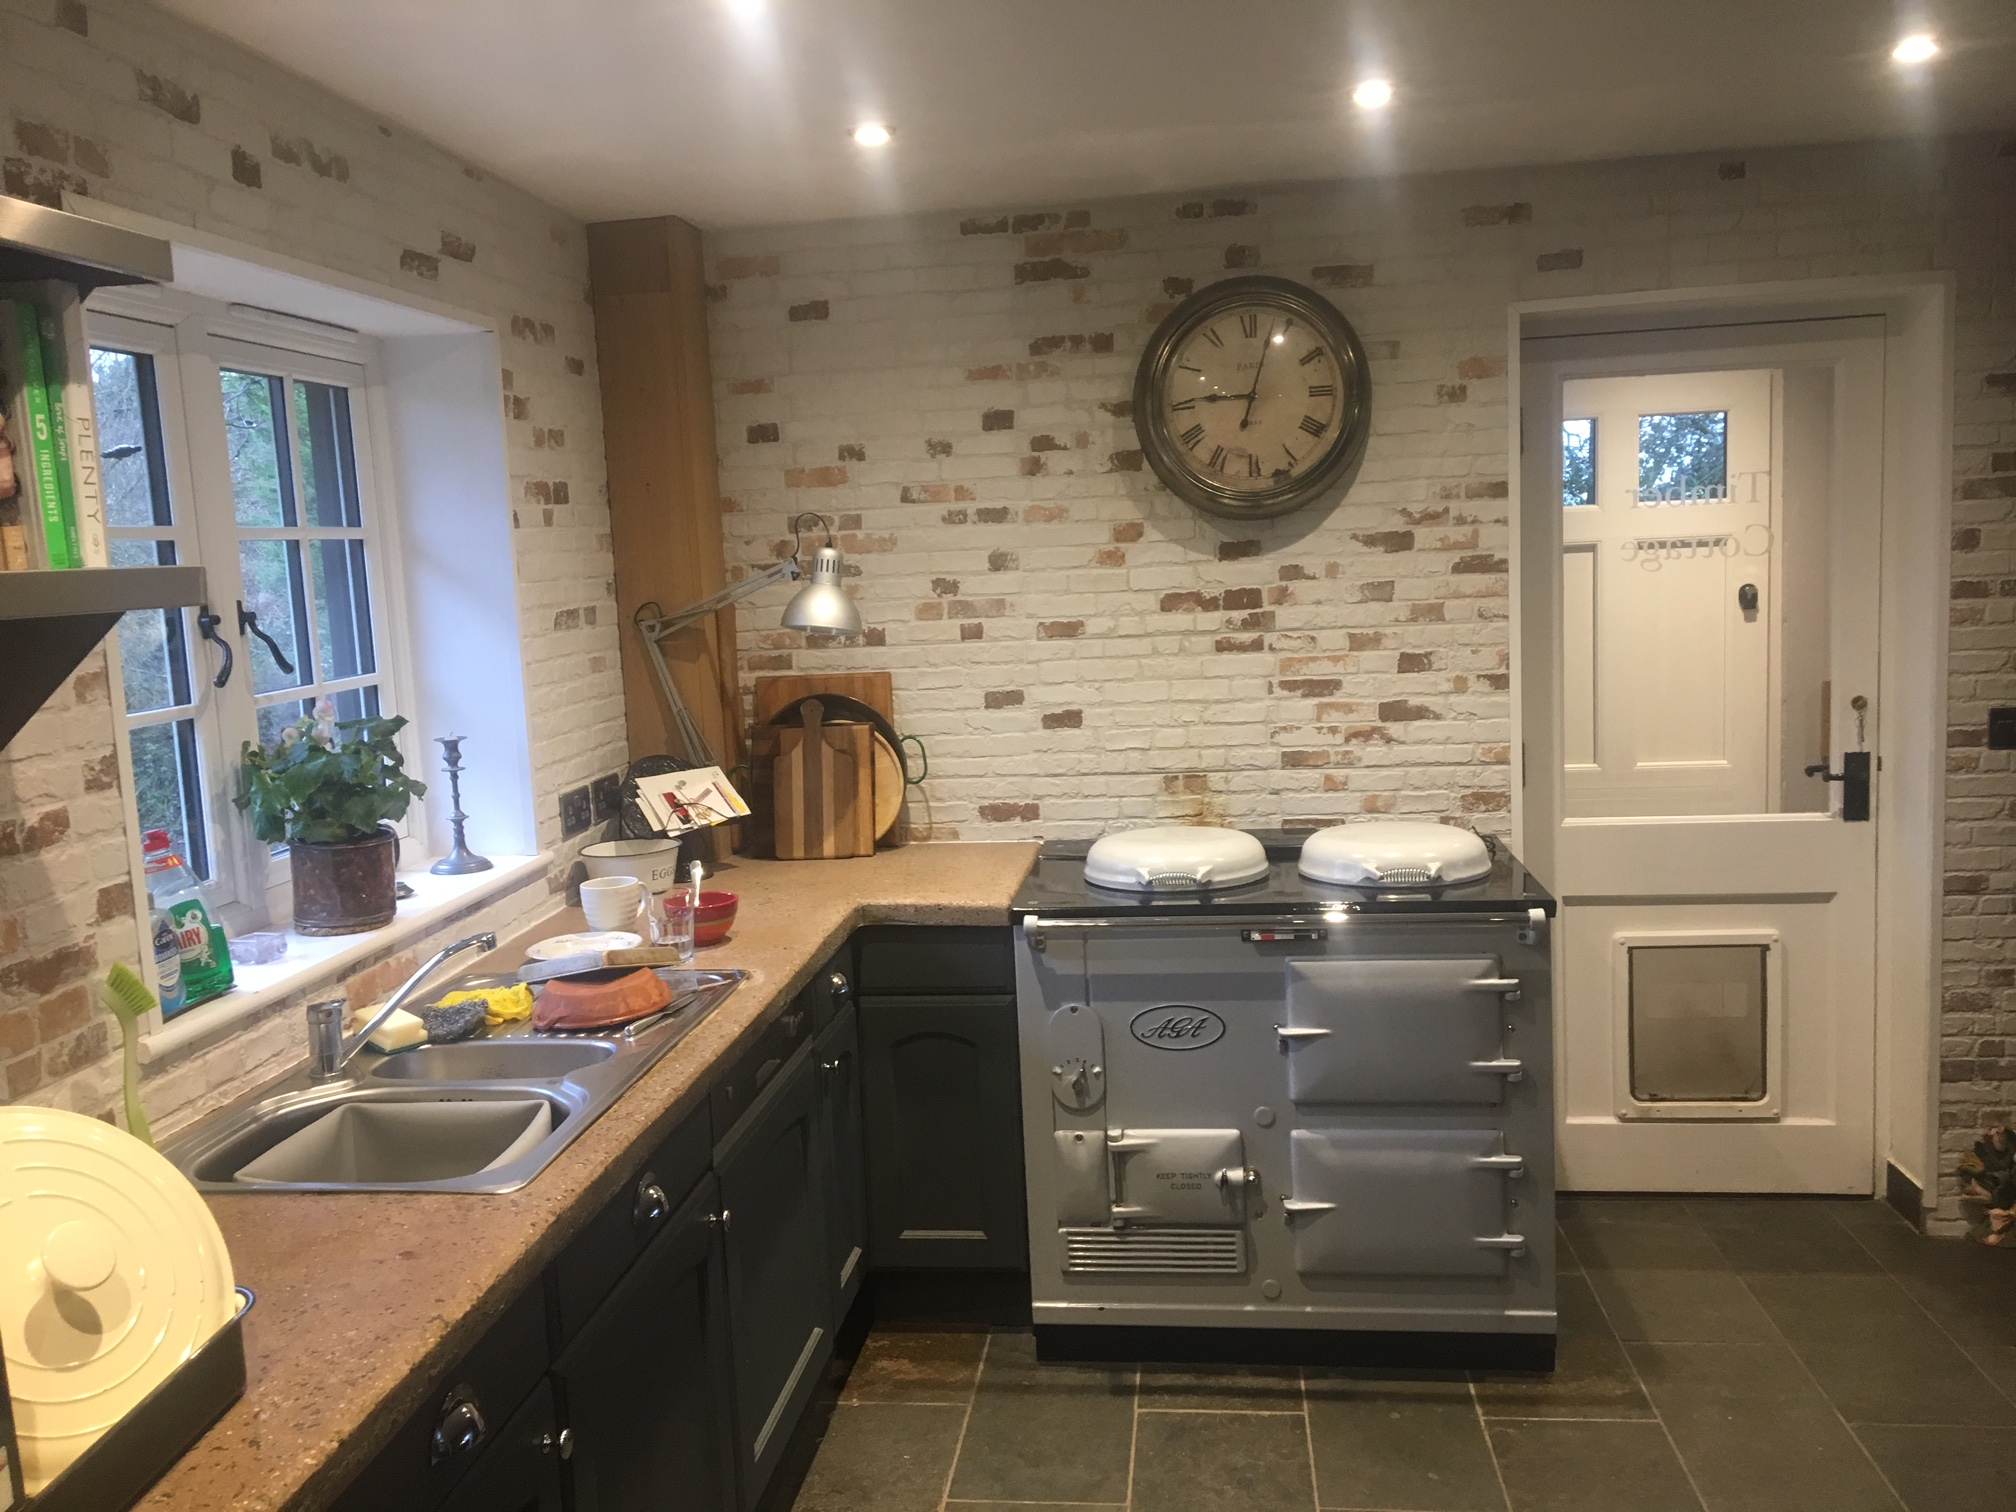 2 Oven Aga Standard<br>Fully reconditioned <br>Re-Enamelled in Light Grey<br>Converted to Electric <br><br>Installed in West Sussex